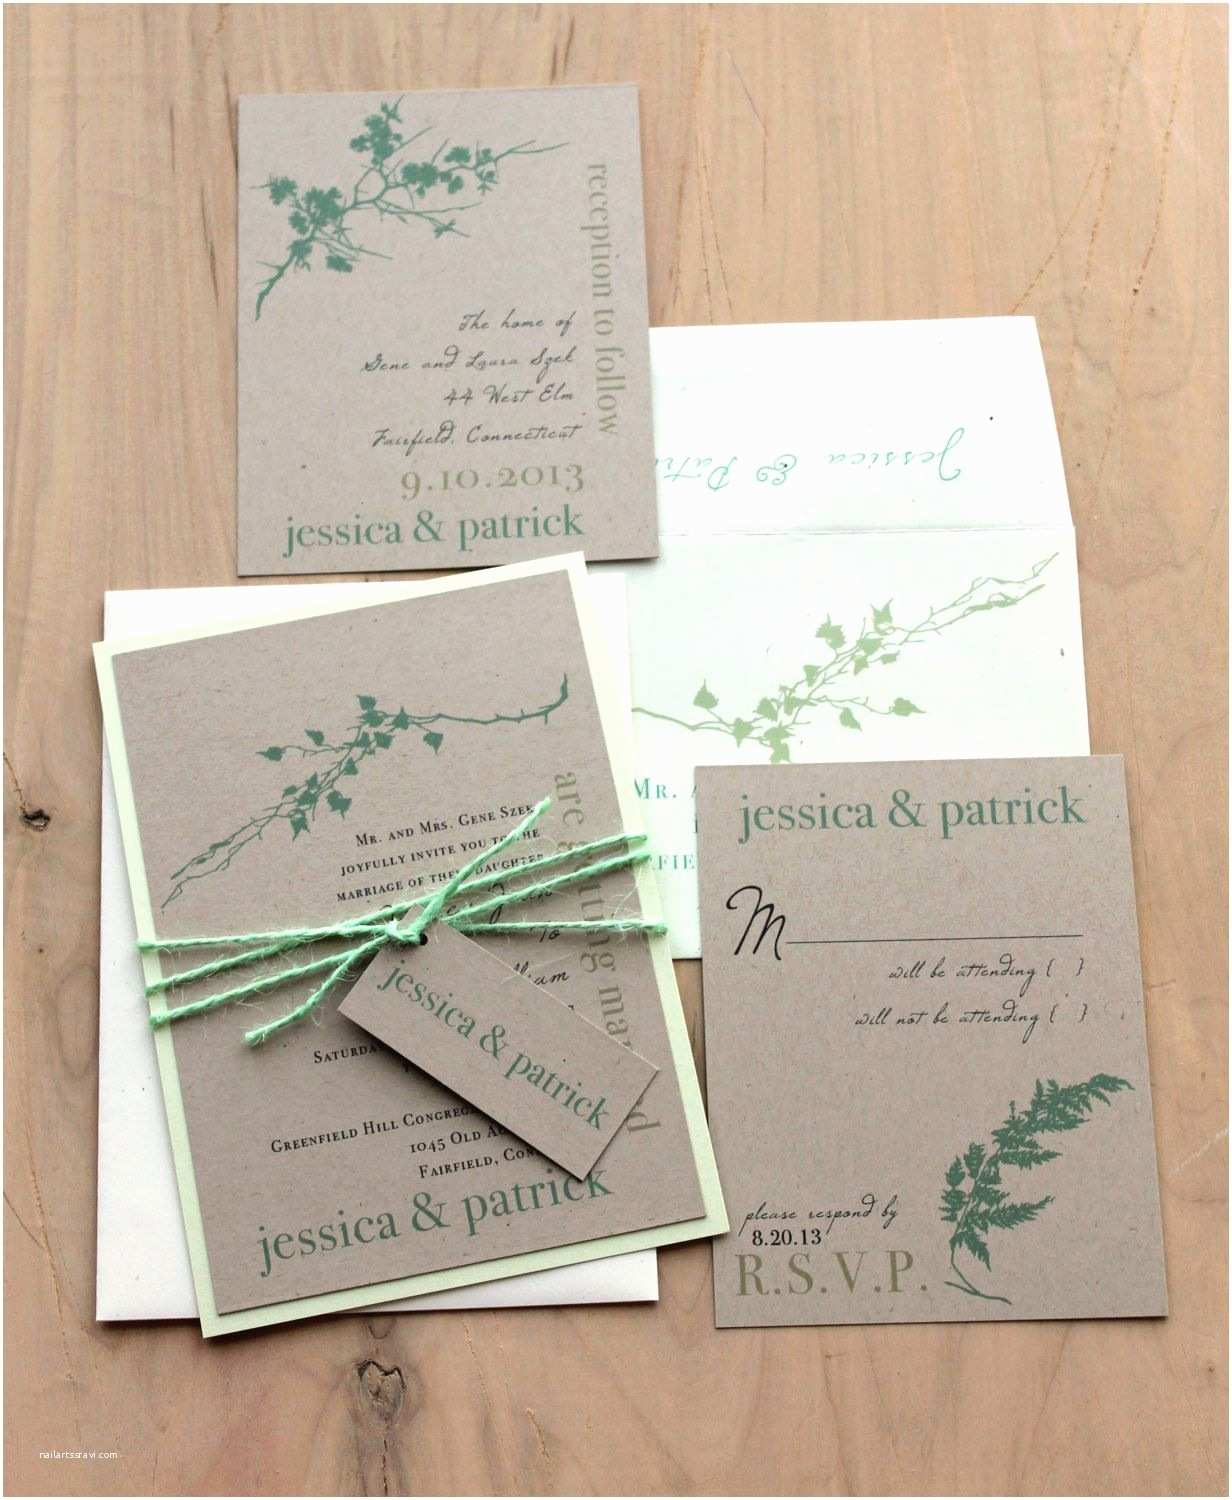 Mint Wedding Invitations Ivory Romance Mint Green Rustic Chic & Elegant Wedding